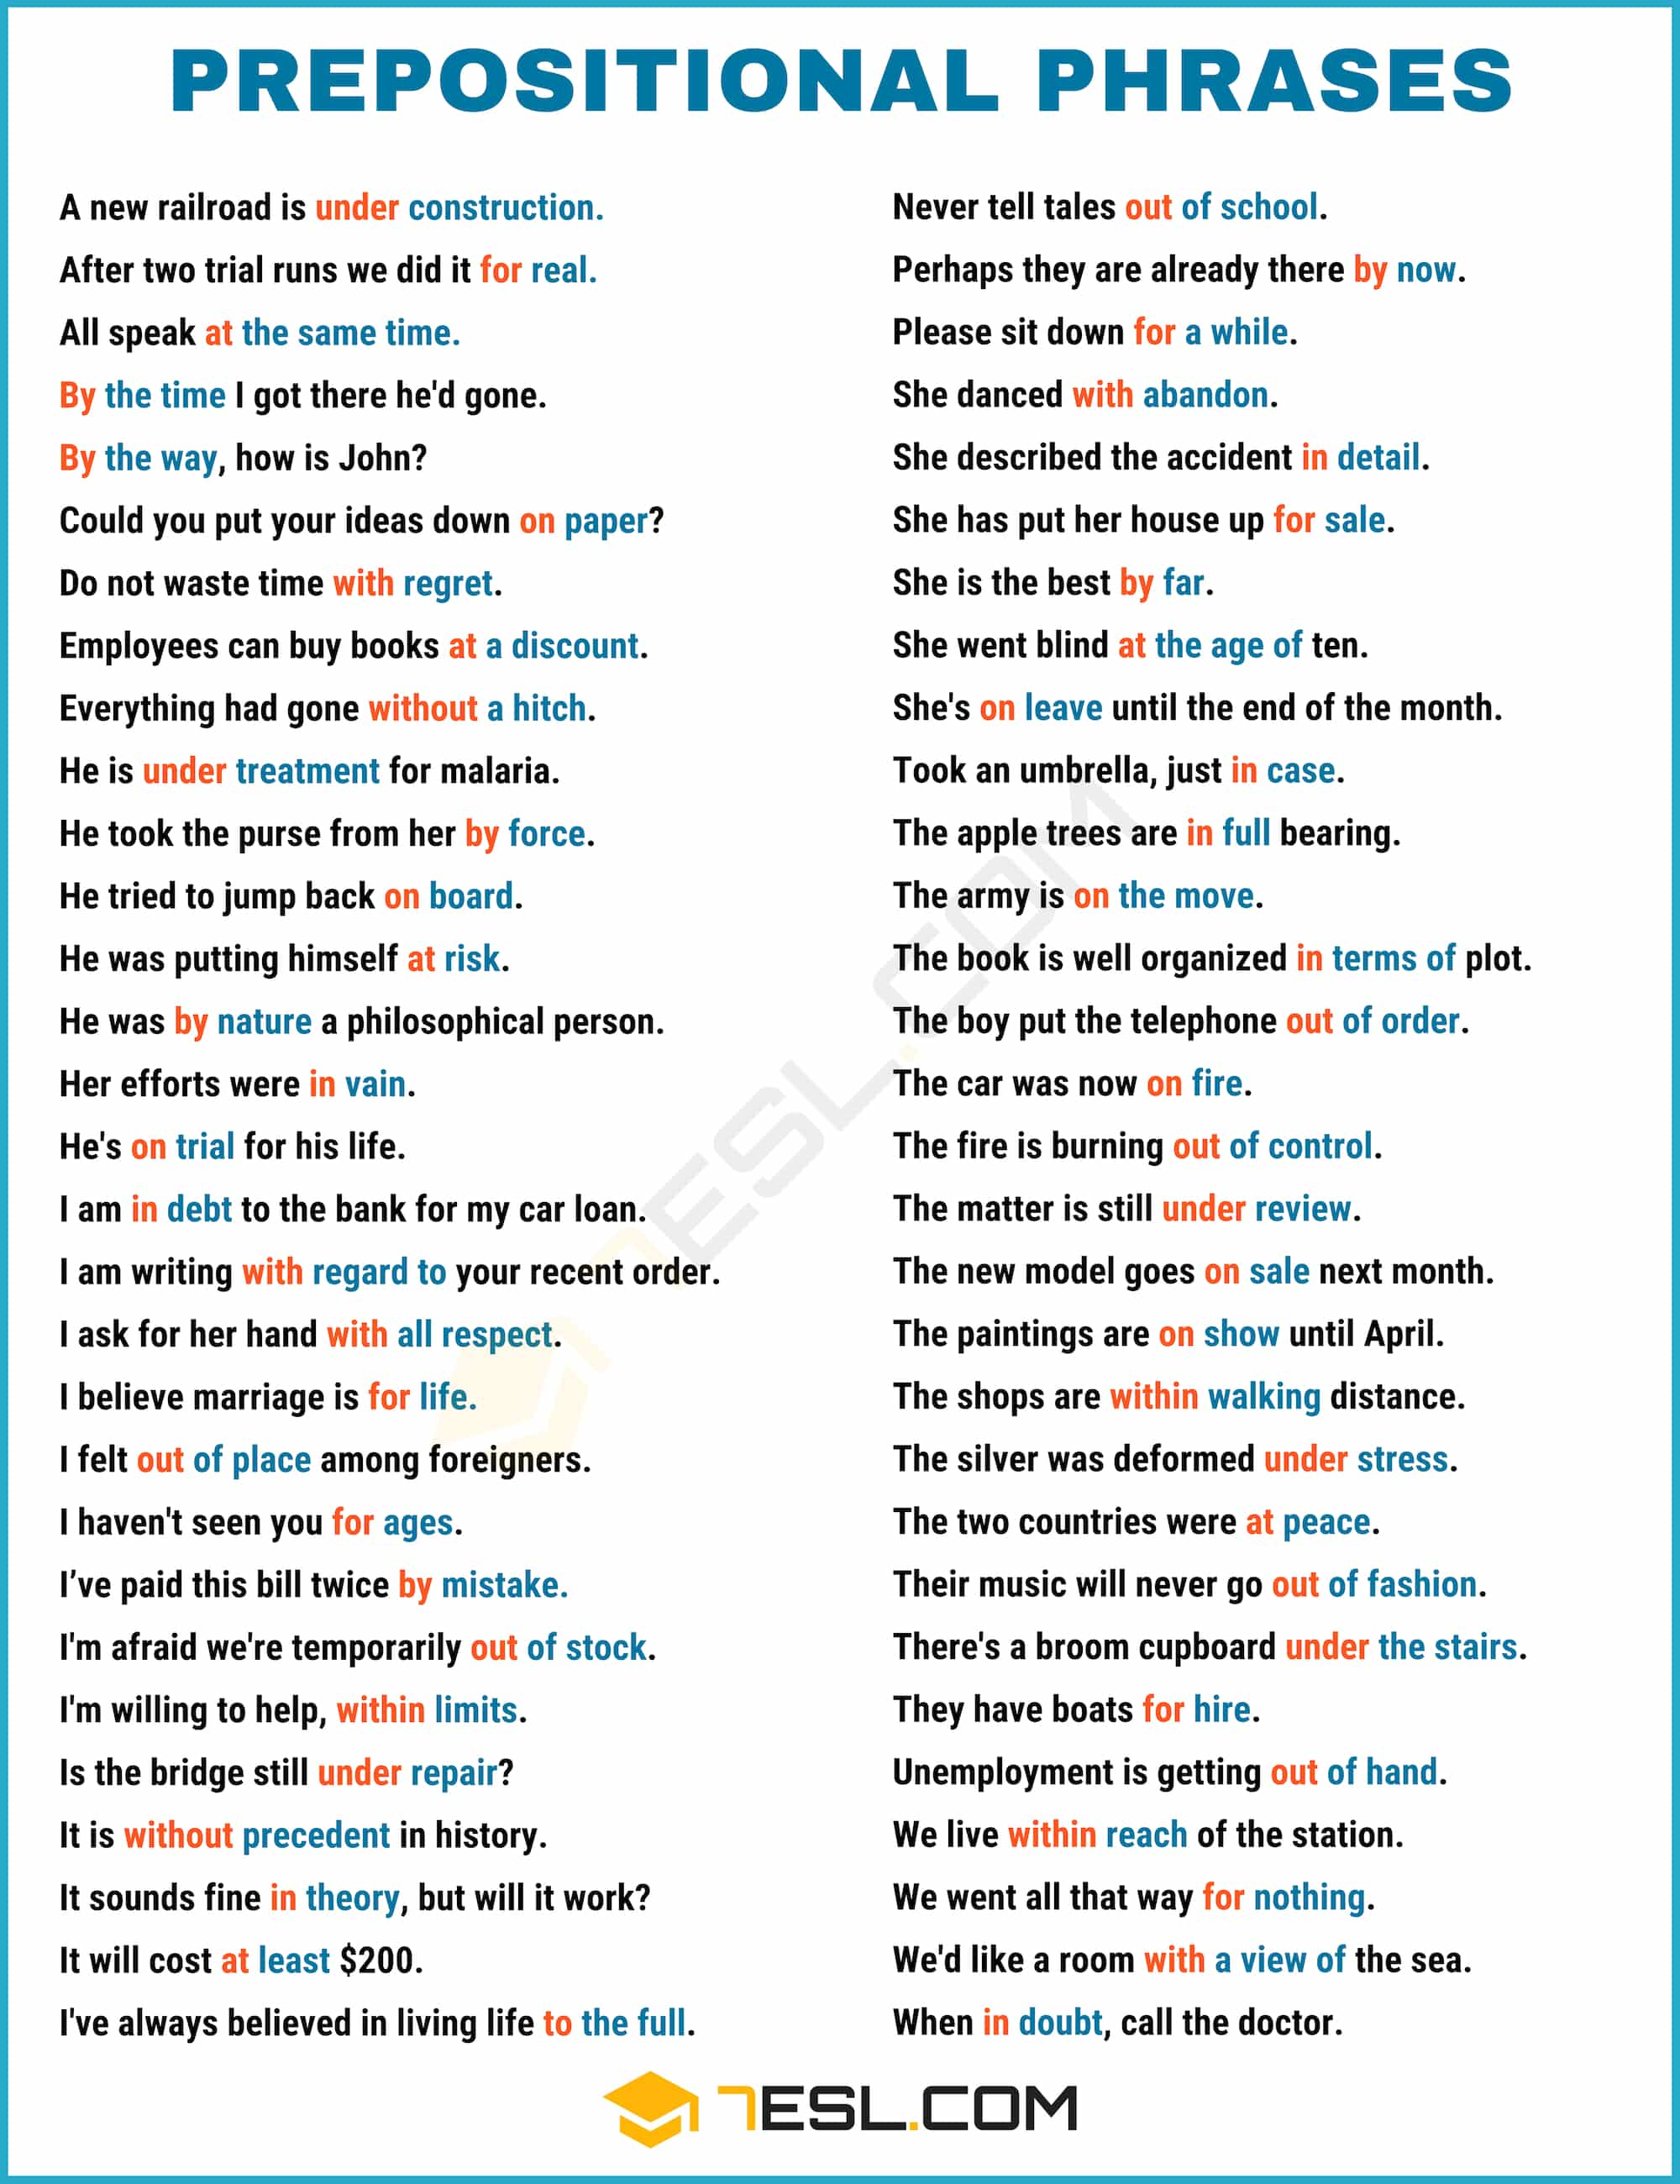 Prepositional Phrases: What is a Prepositional Phrases? Popular List and Examples